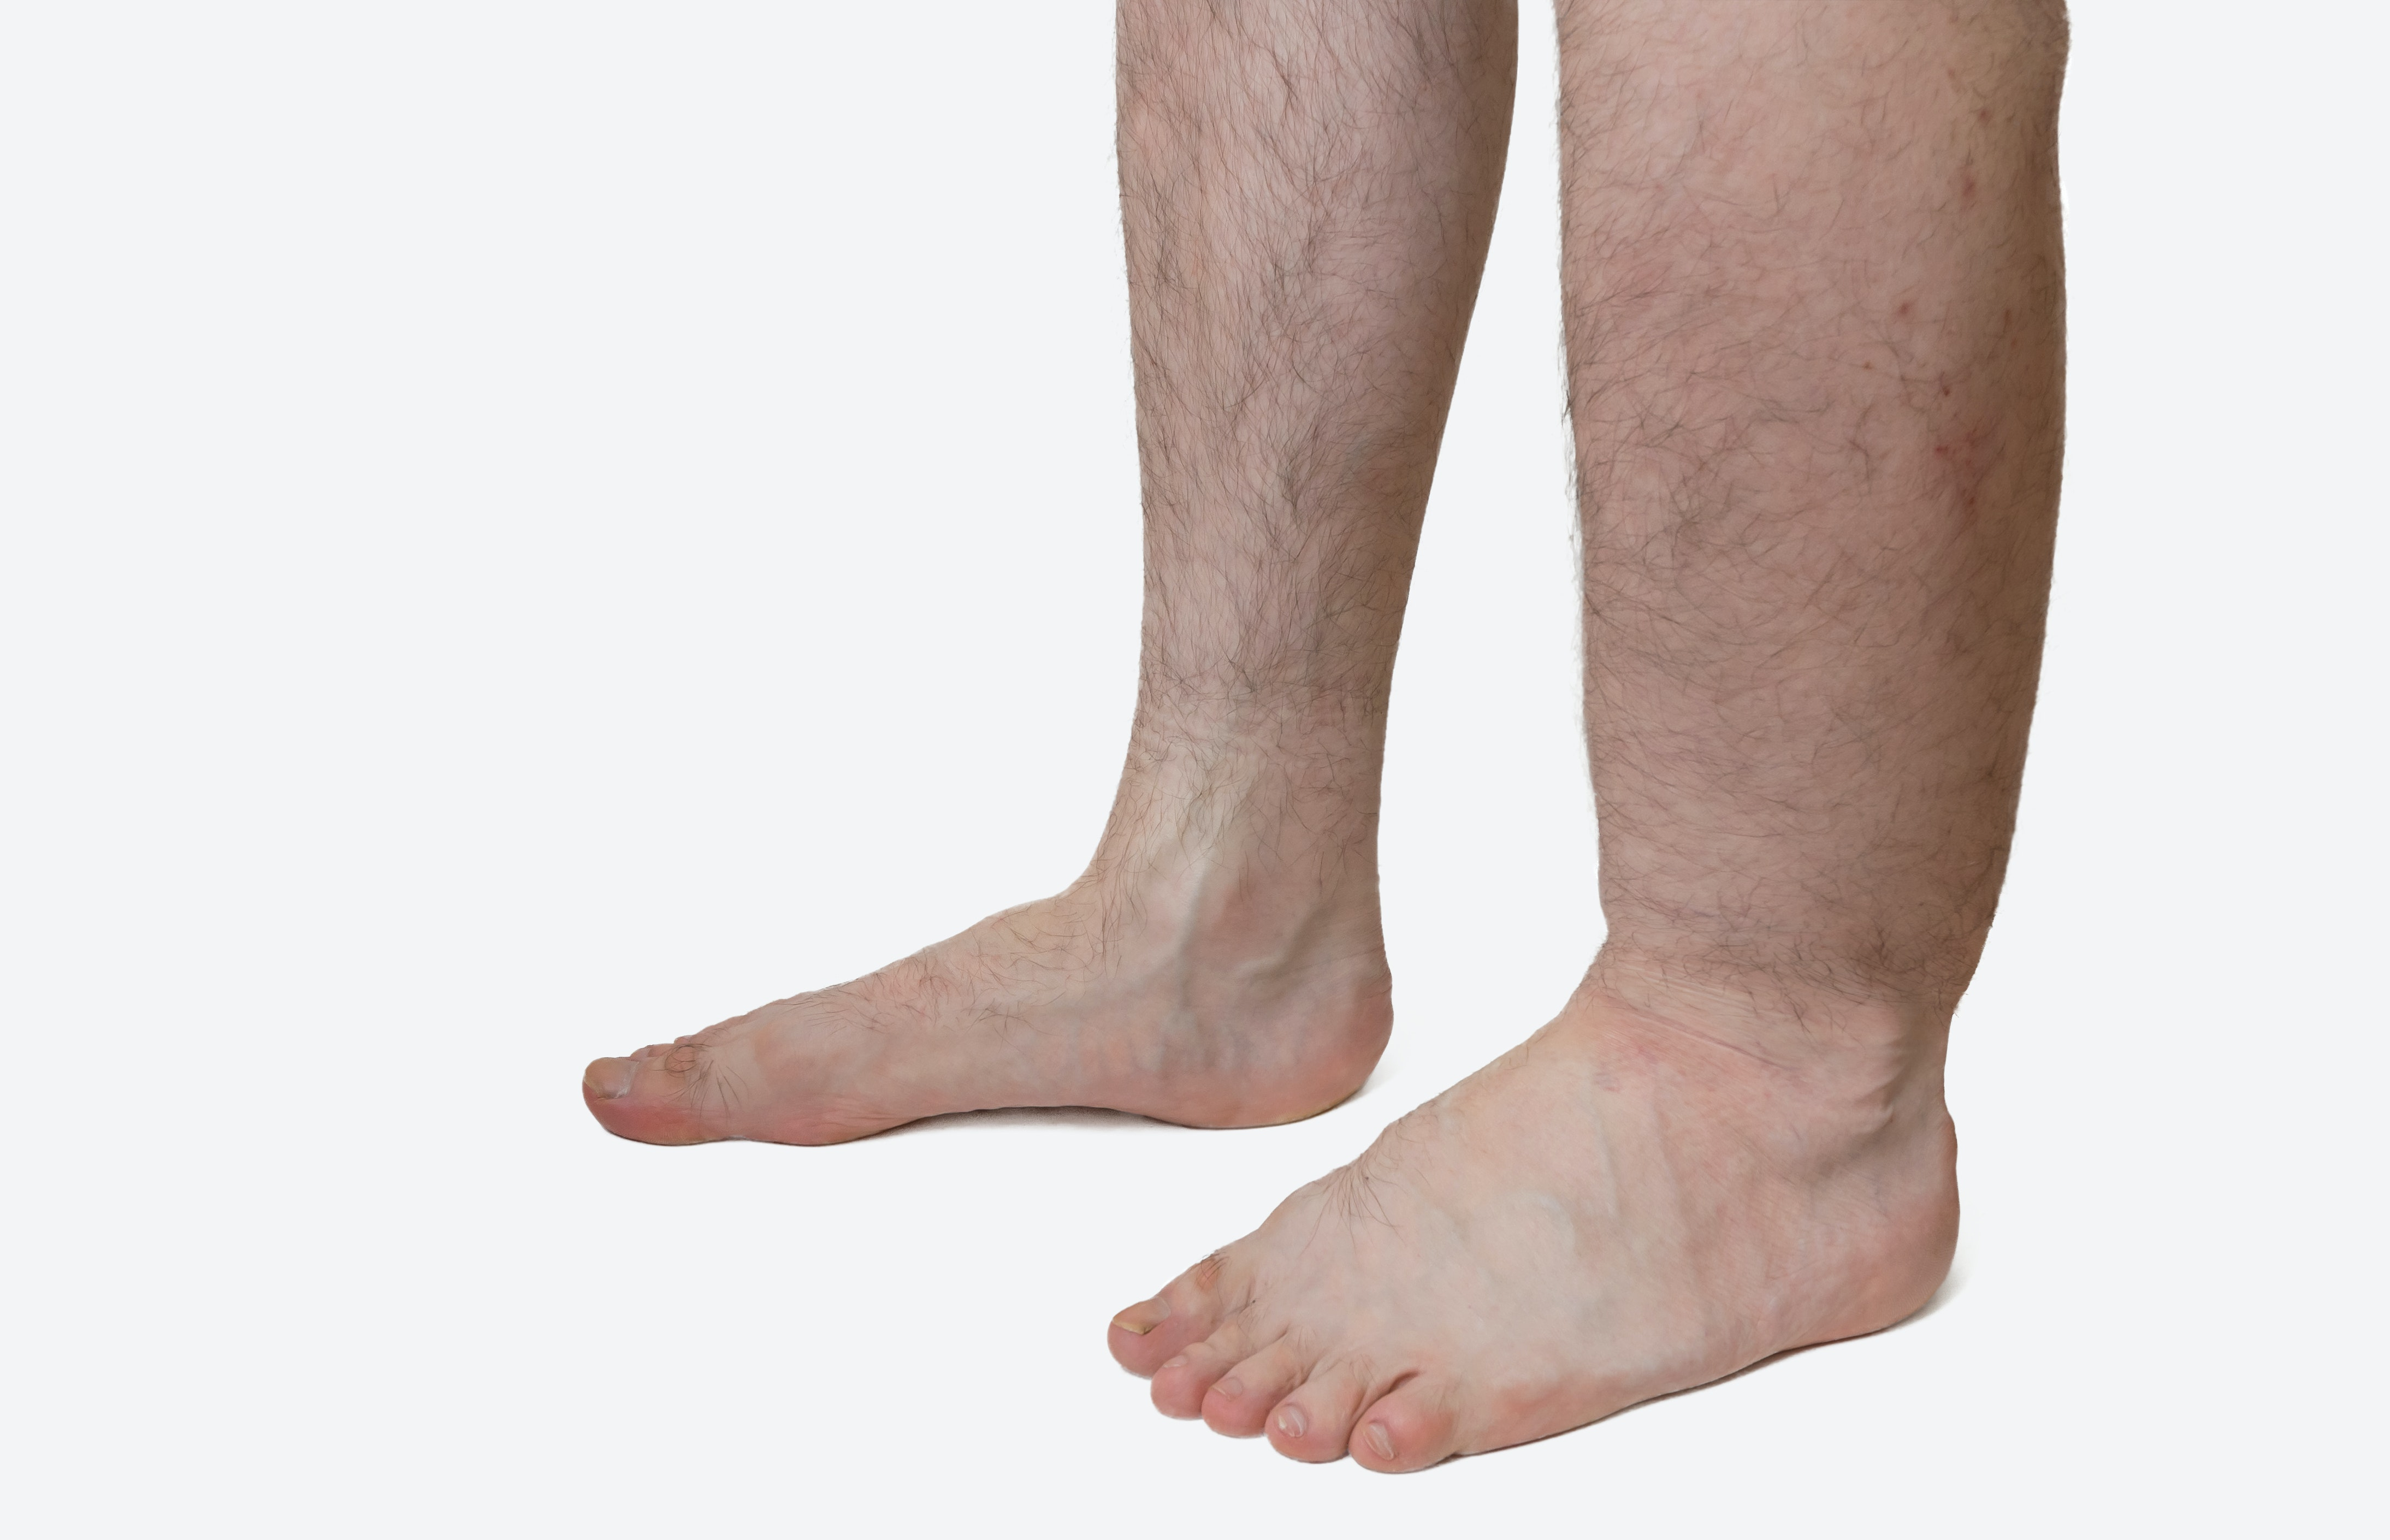 What to do when legs are swollen 14